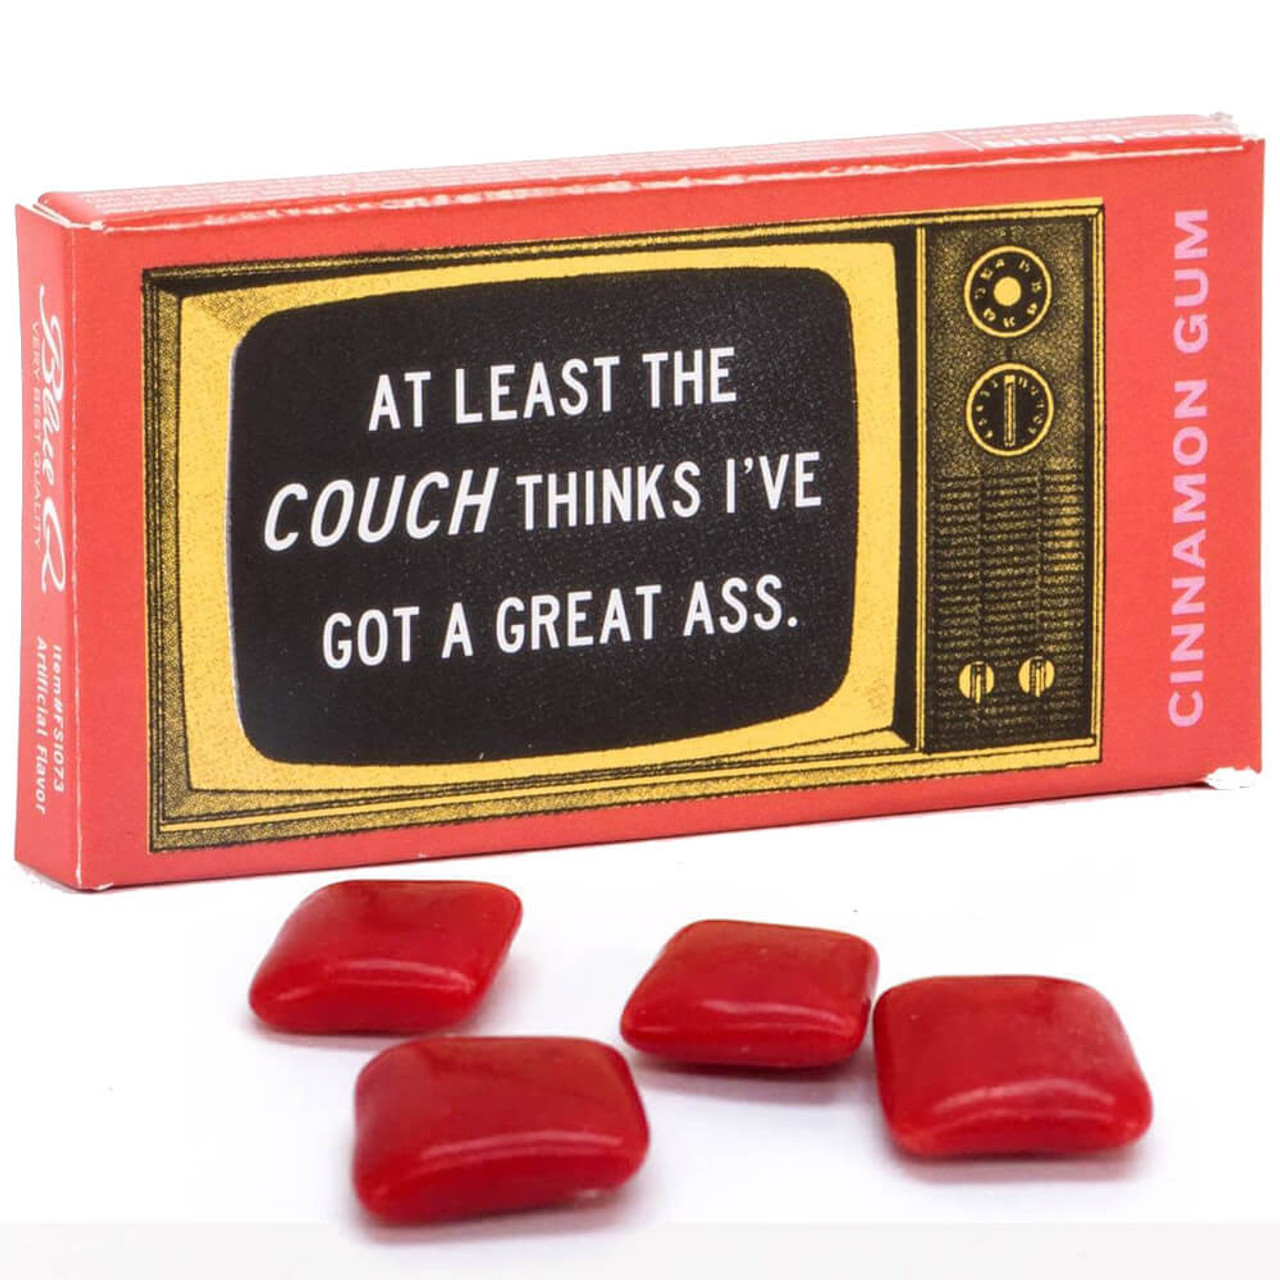 At Least The Couch Thinks I've Got A Great Ass. Gum